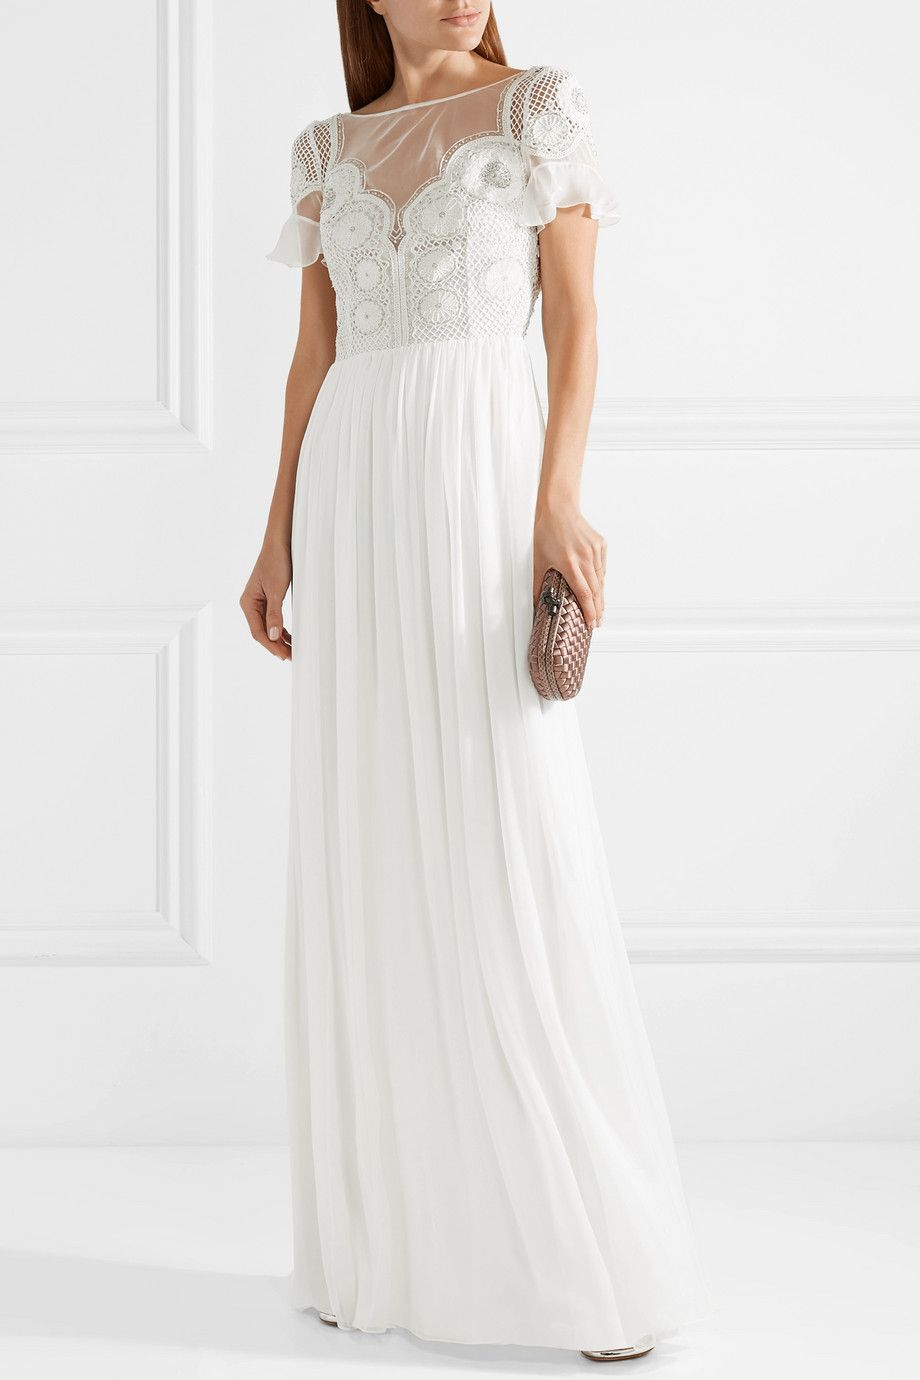 Open-back Embellished Crocheted Tulle And Silk-chiffon Gown - White Temperley London Store Sale aSQIe